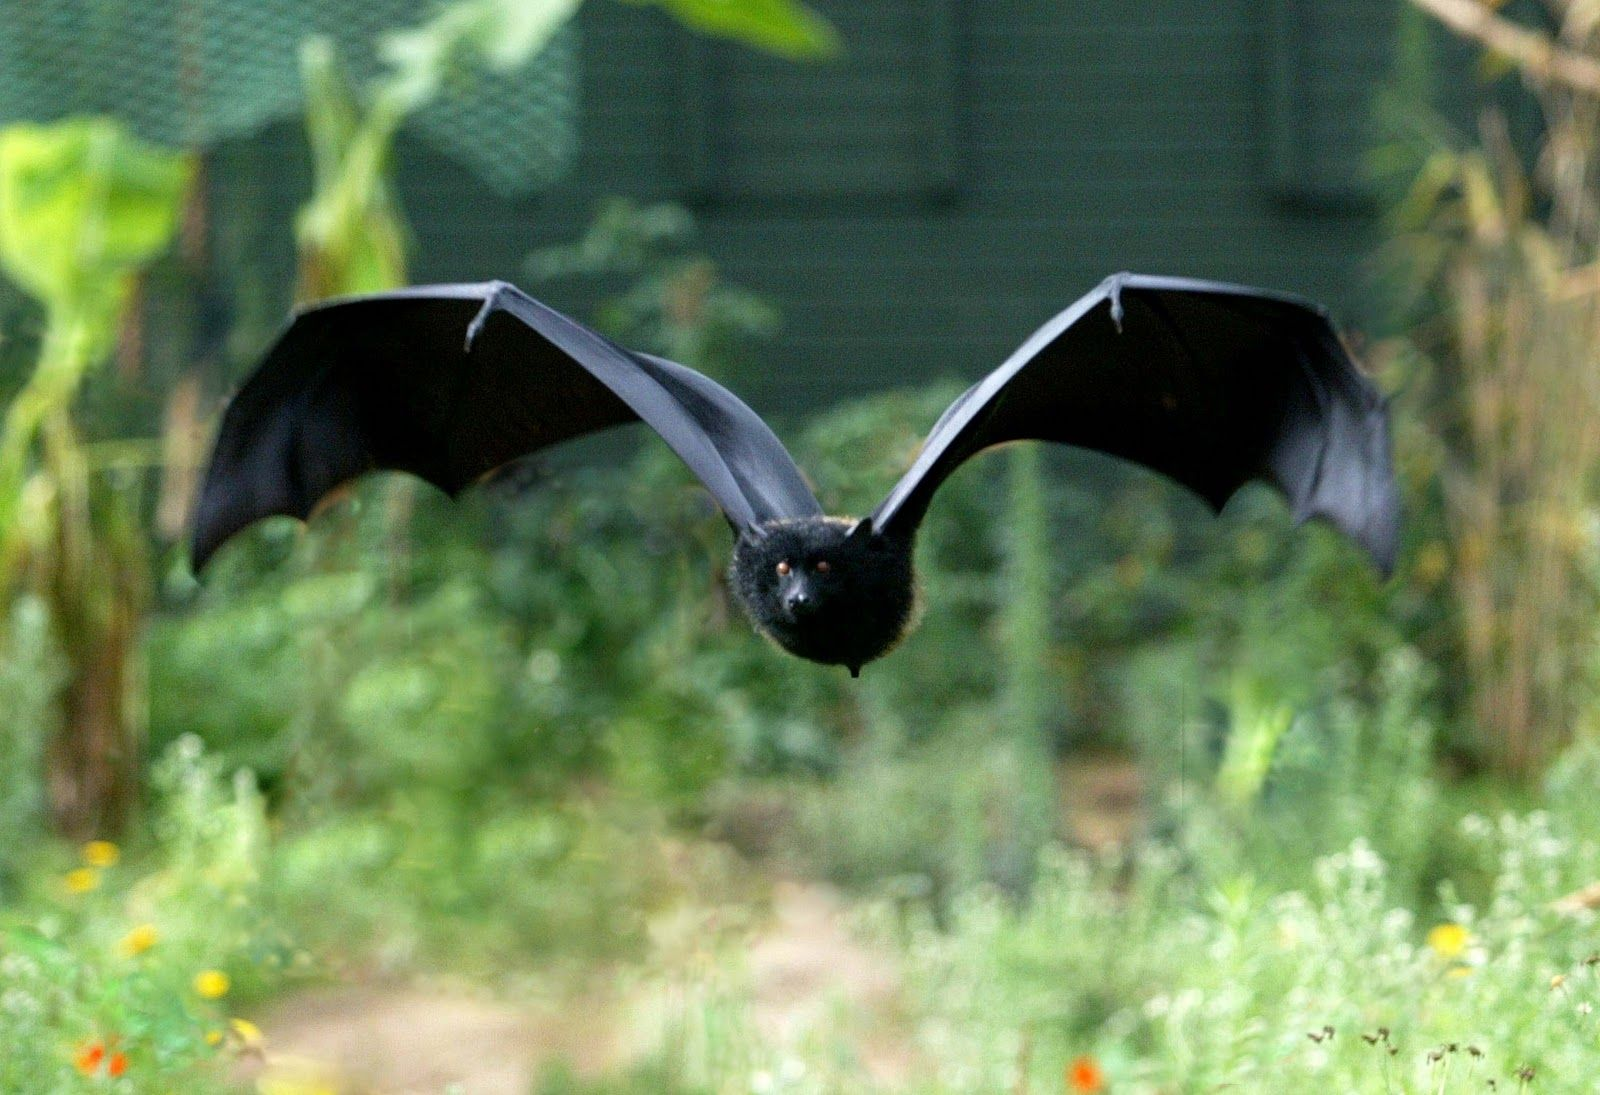 Livingstone's Fruit Bat (Comoro Flying Fox) - Pteropus livingstonii - This Old World bat is of the family Pteropodidae and is found only in the Comoros islands of the western Indian Ocean. It is the largest and rarest of all Comorian species - Image : © Richard Wainwright